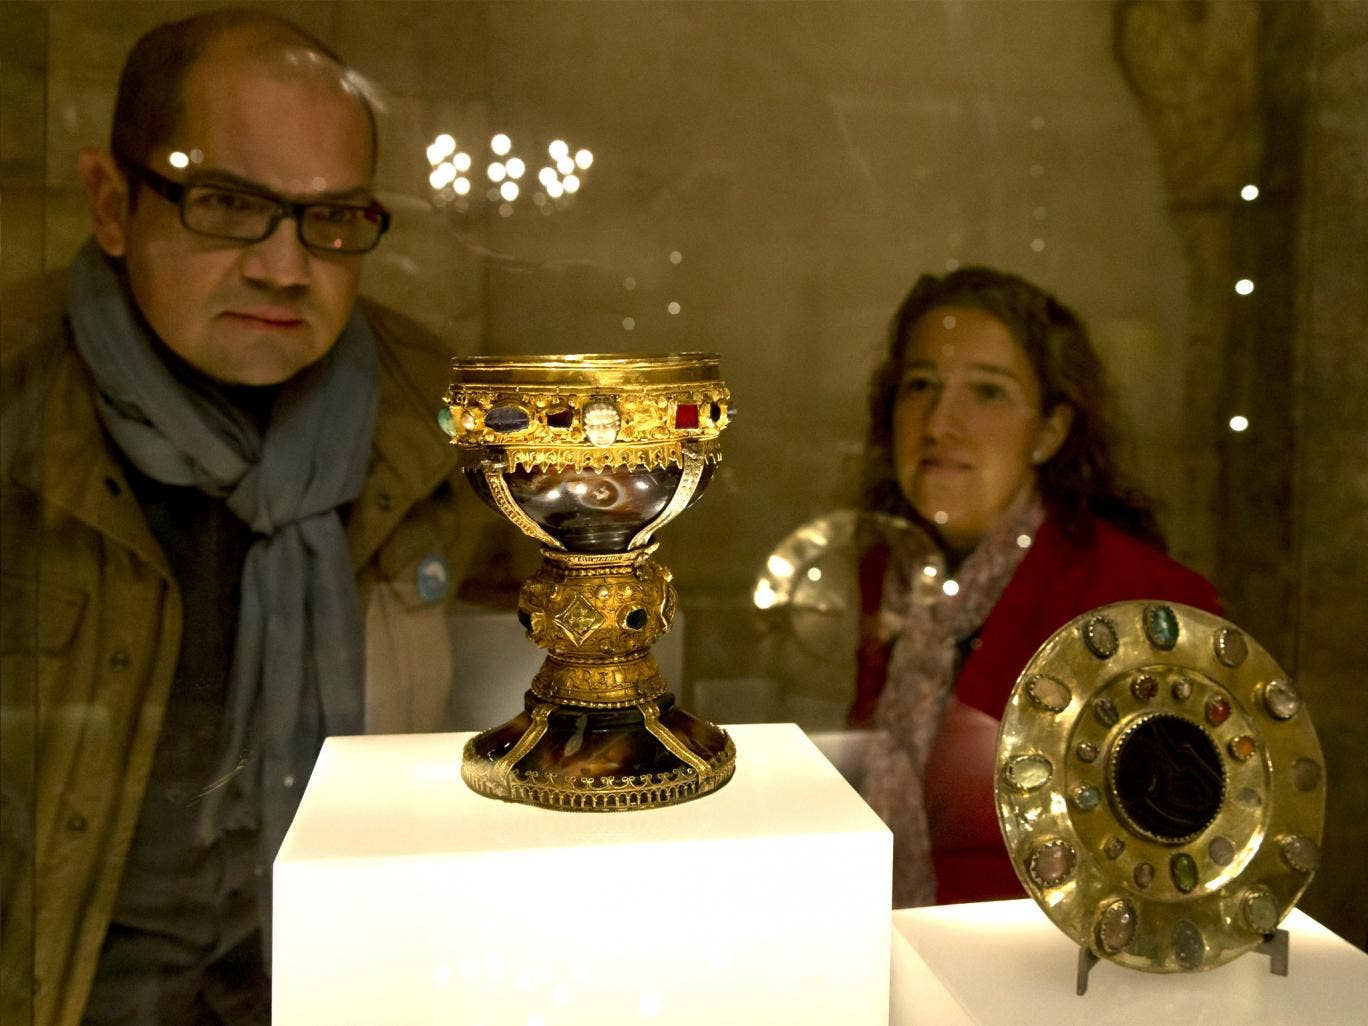 Cup fever: the goblet that two Spanish historians claim is the Holy Grail